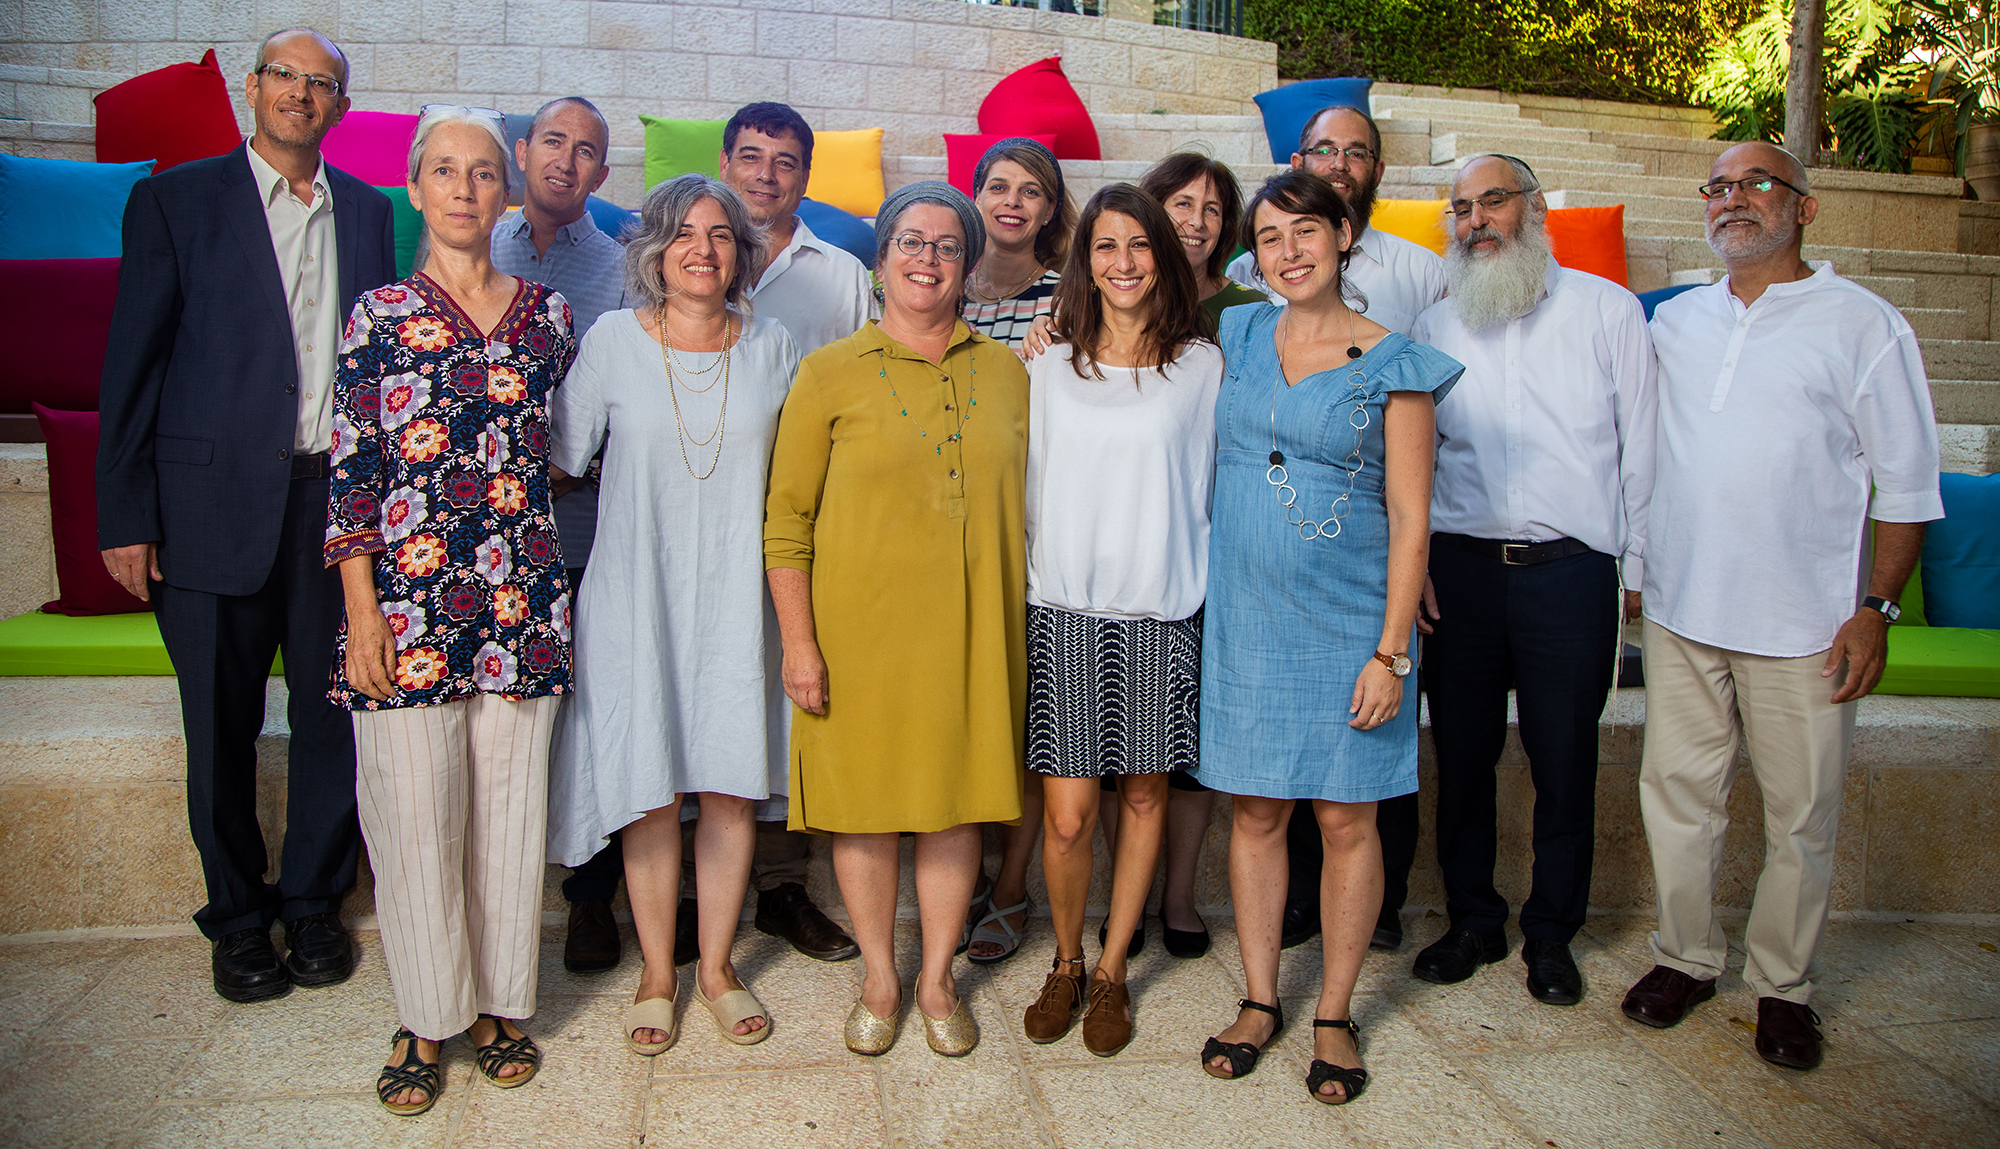 Beit Midrash for Israeli Rabbis